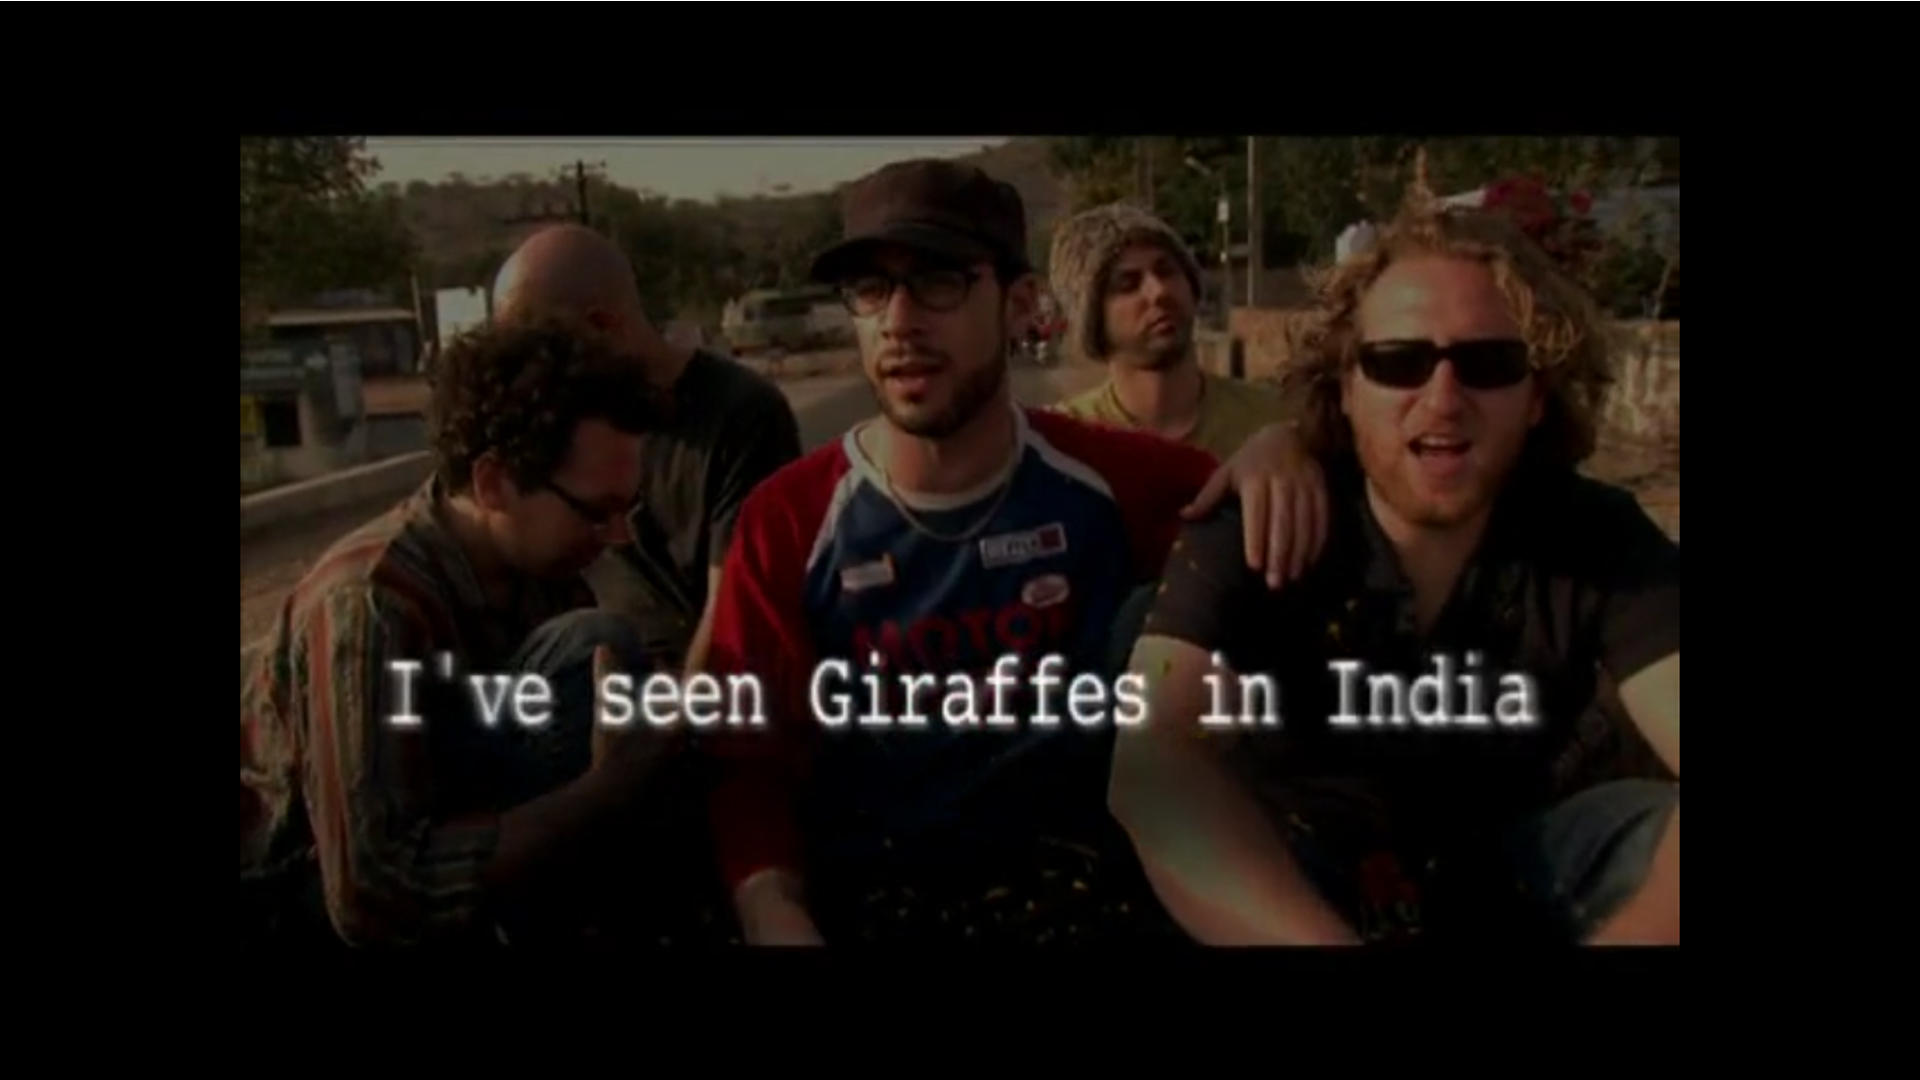 Watch Full Movie - I Saw Giraffes In India